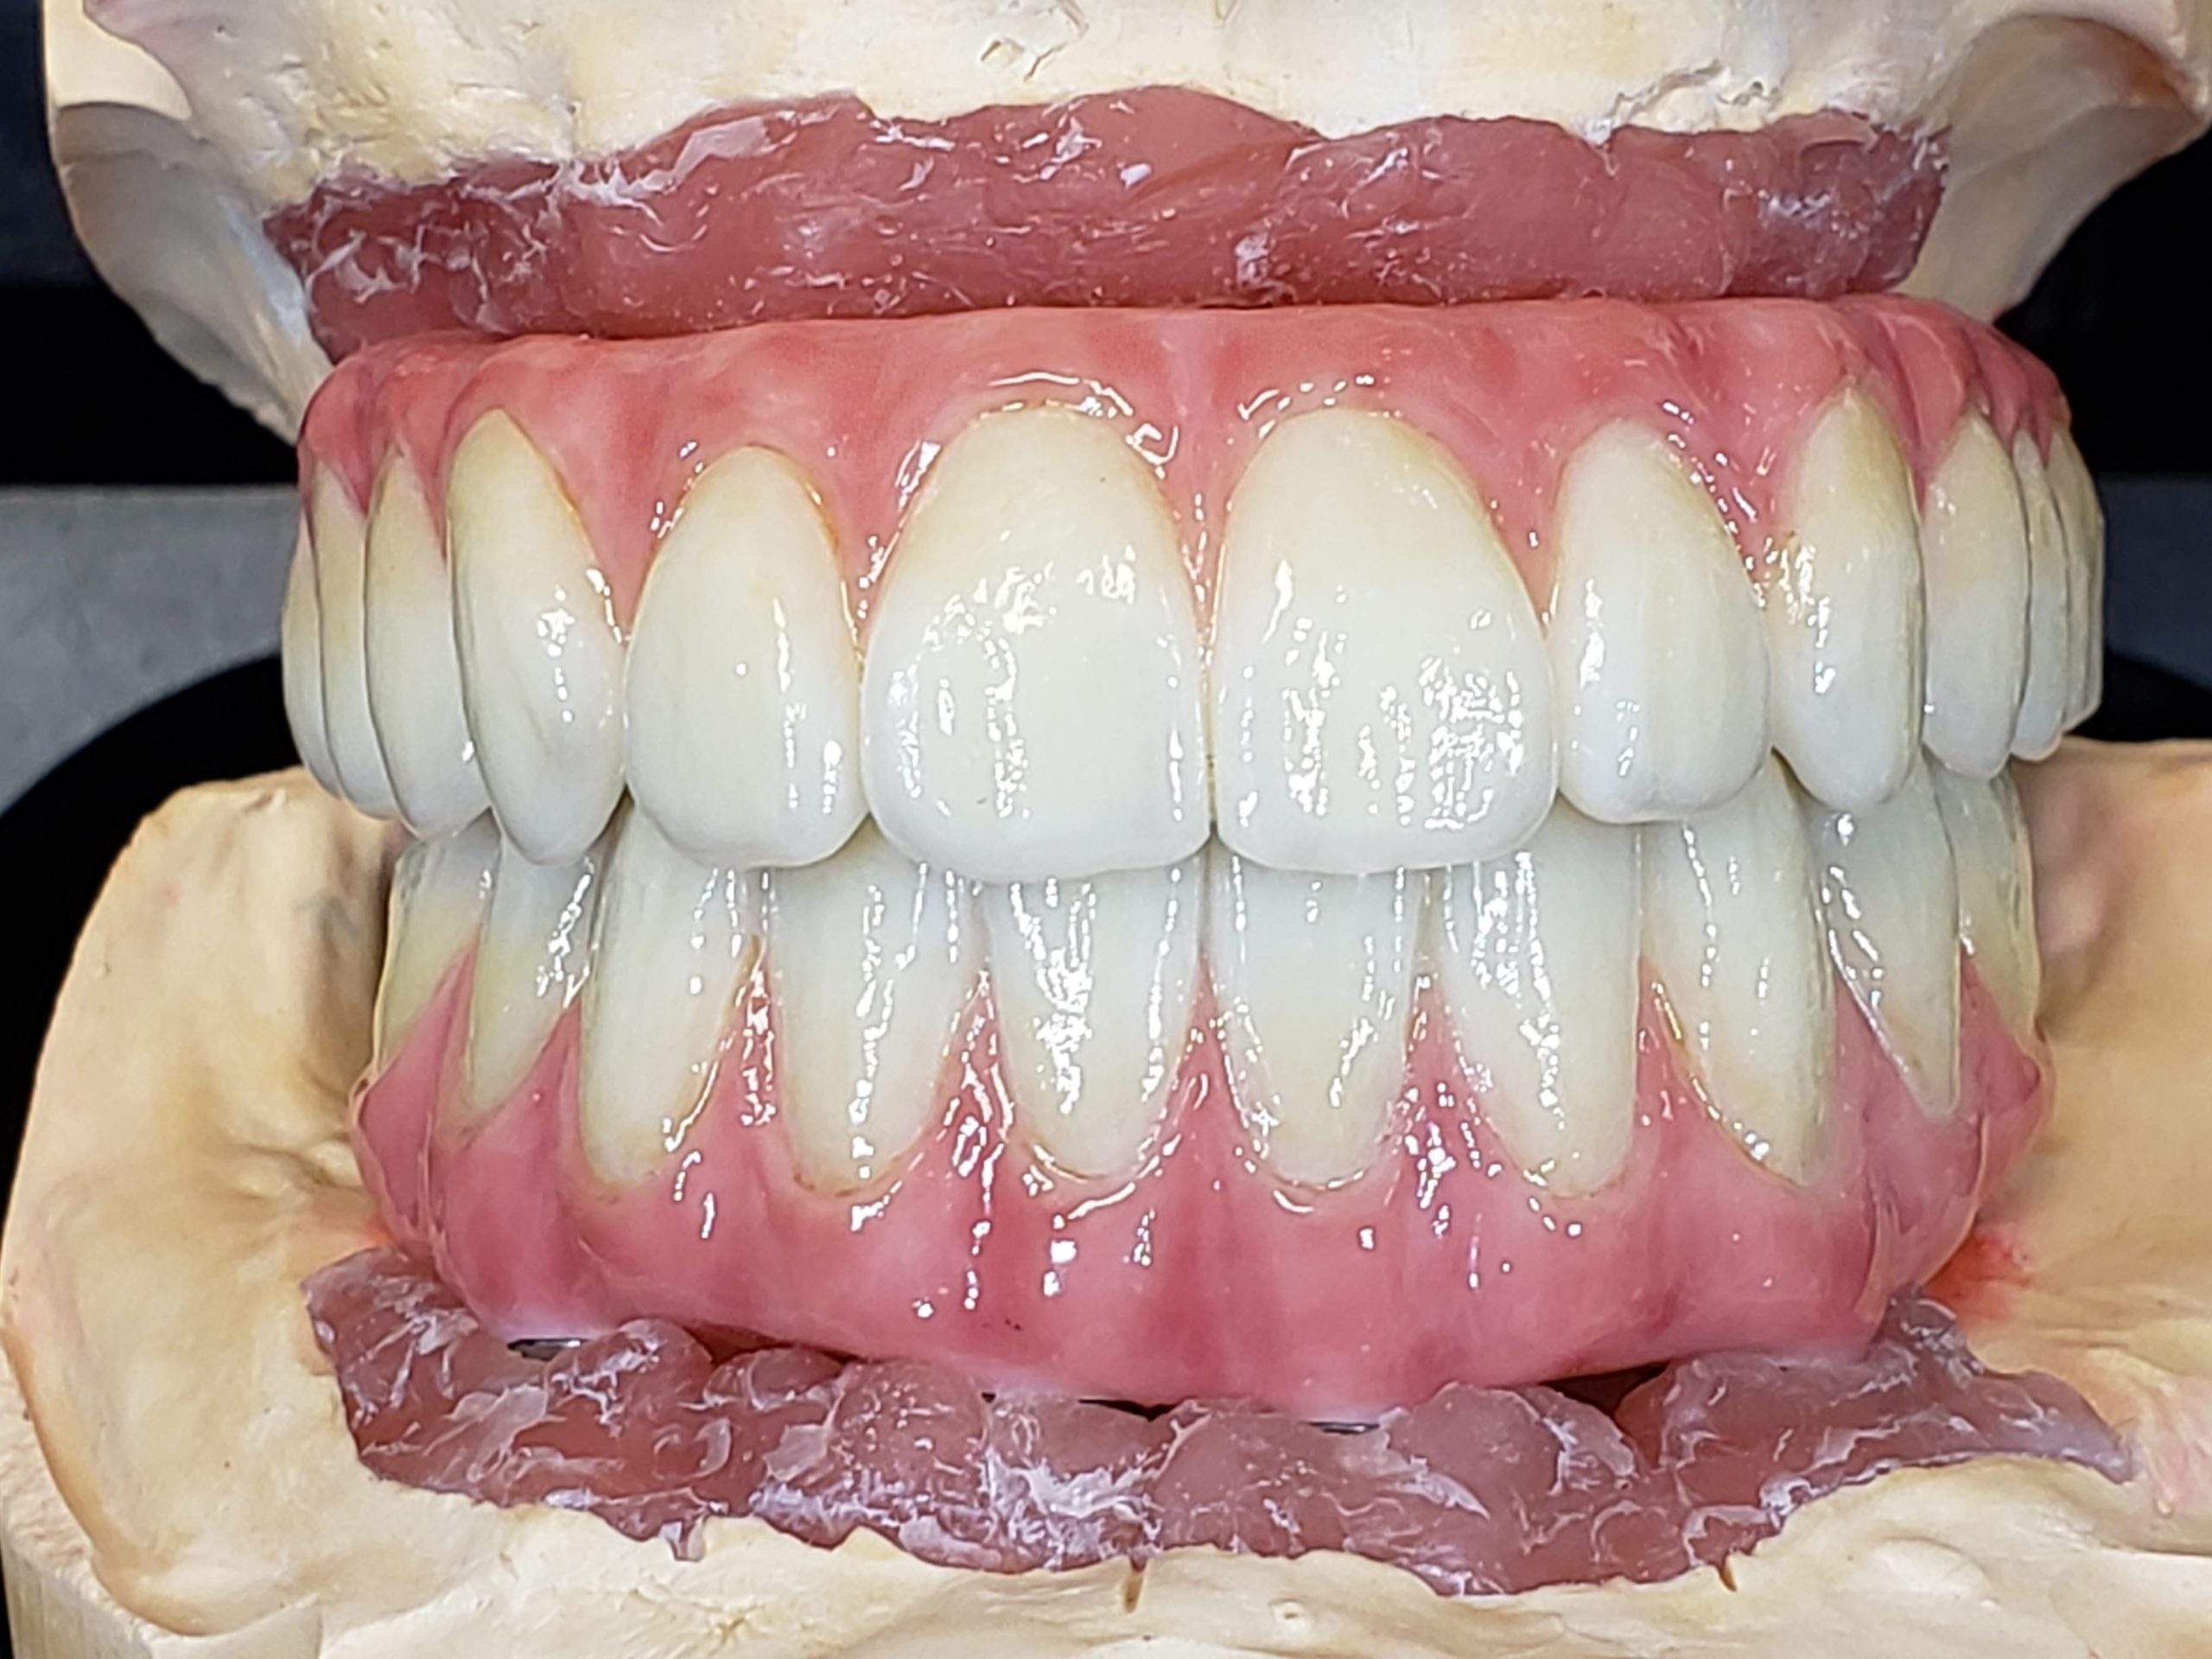 Full contour Zirconia Bar